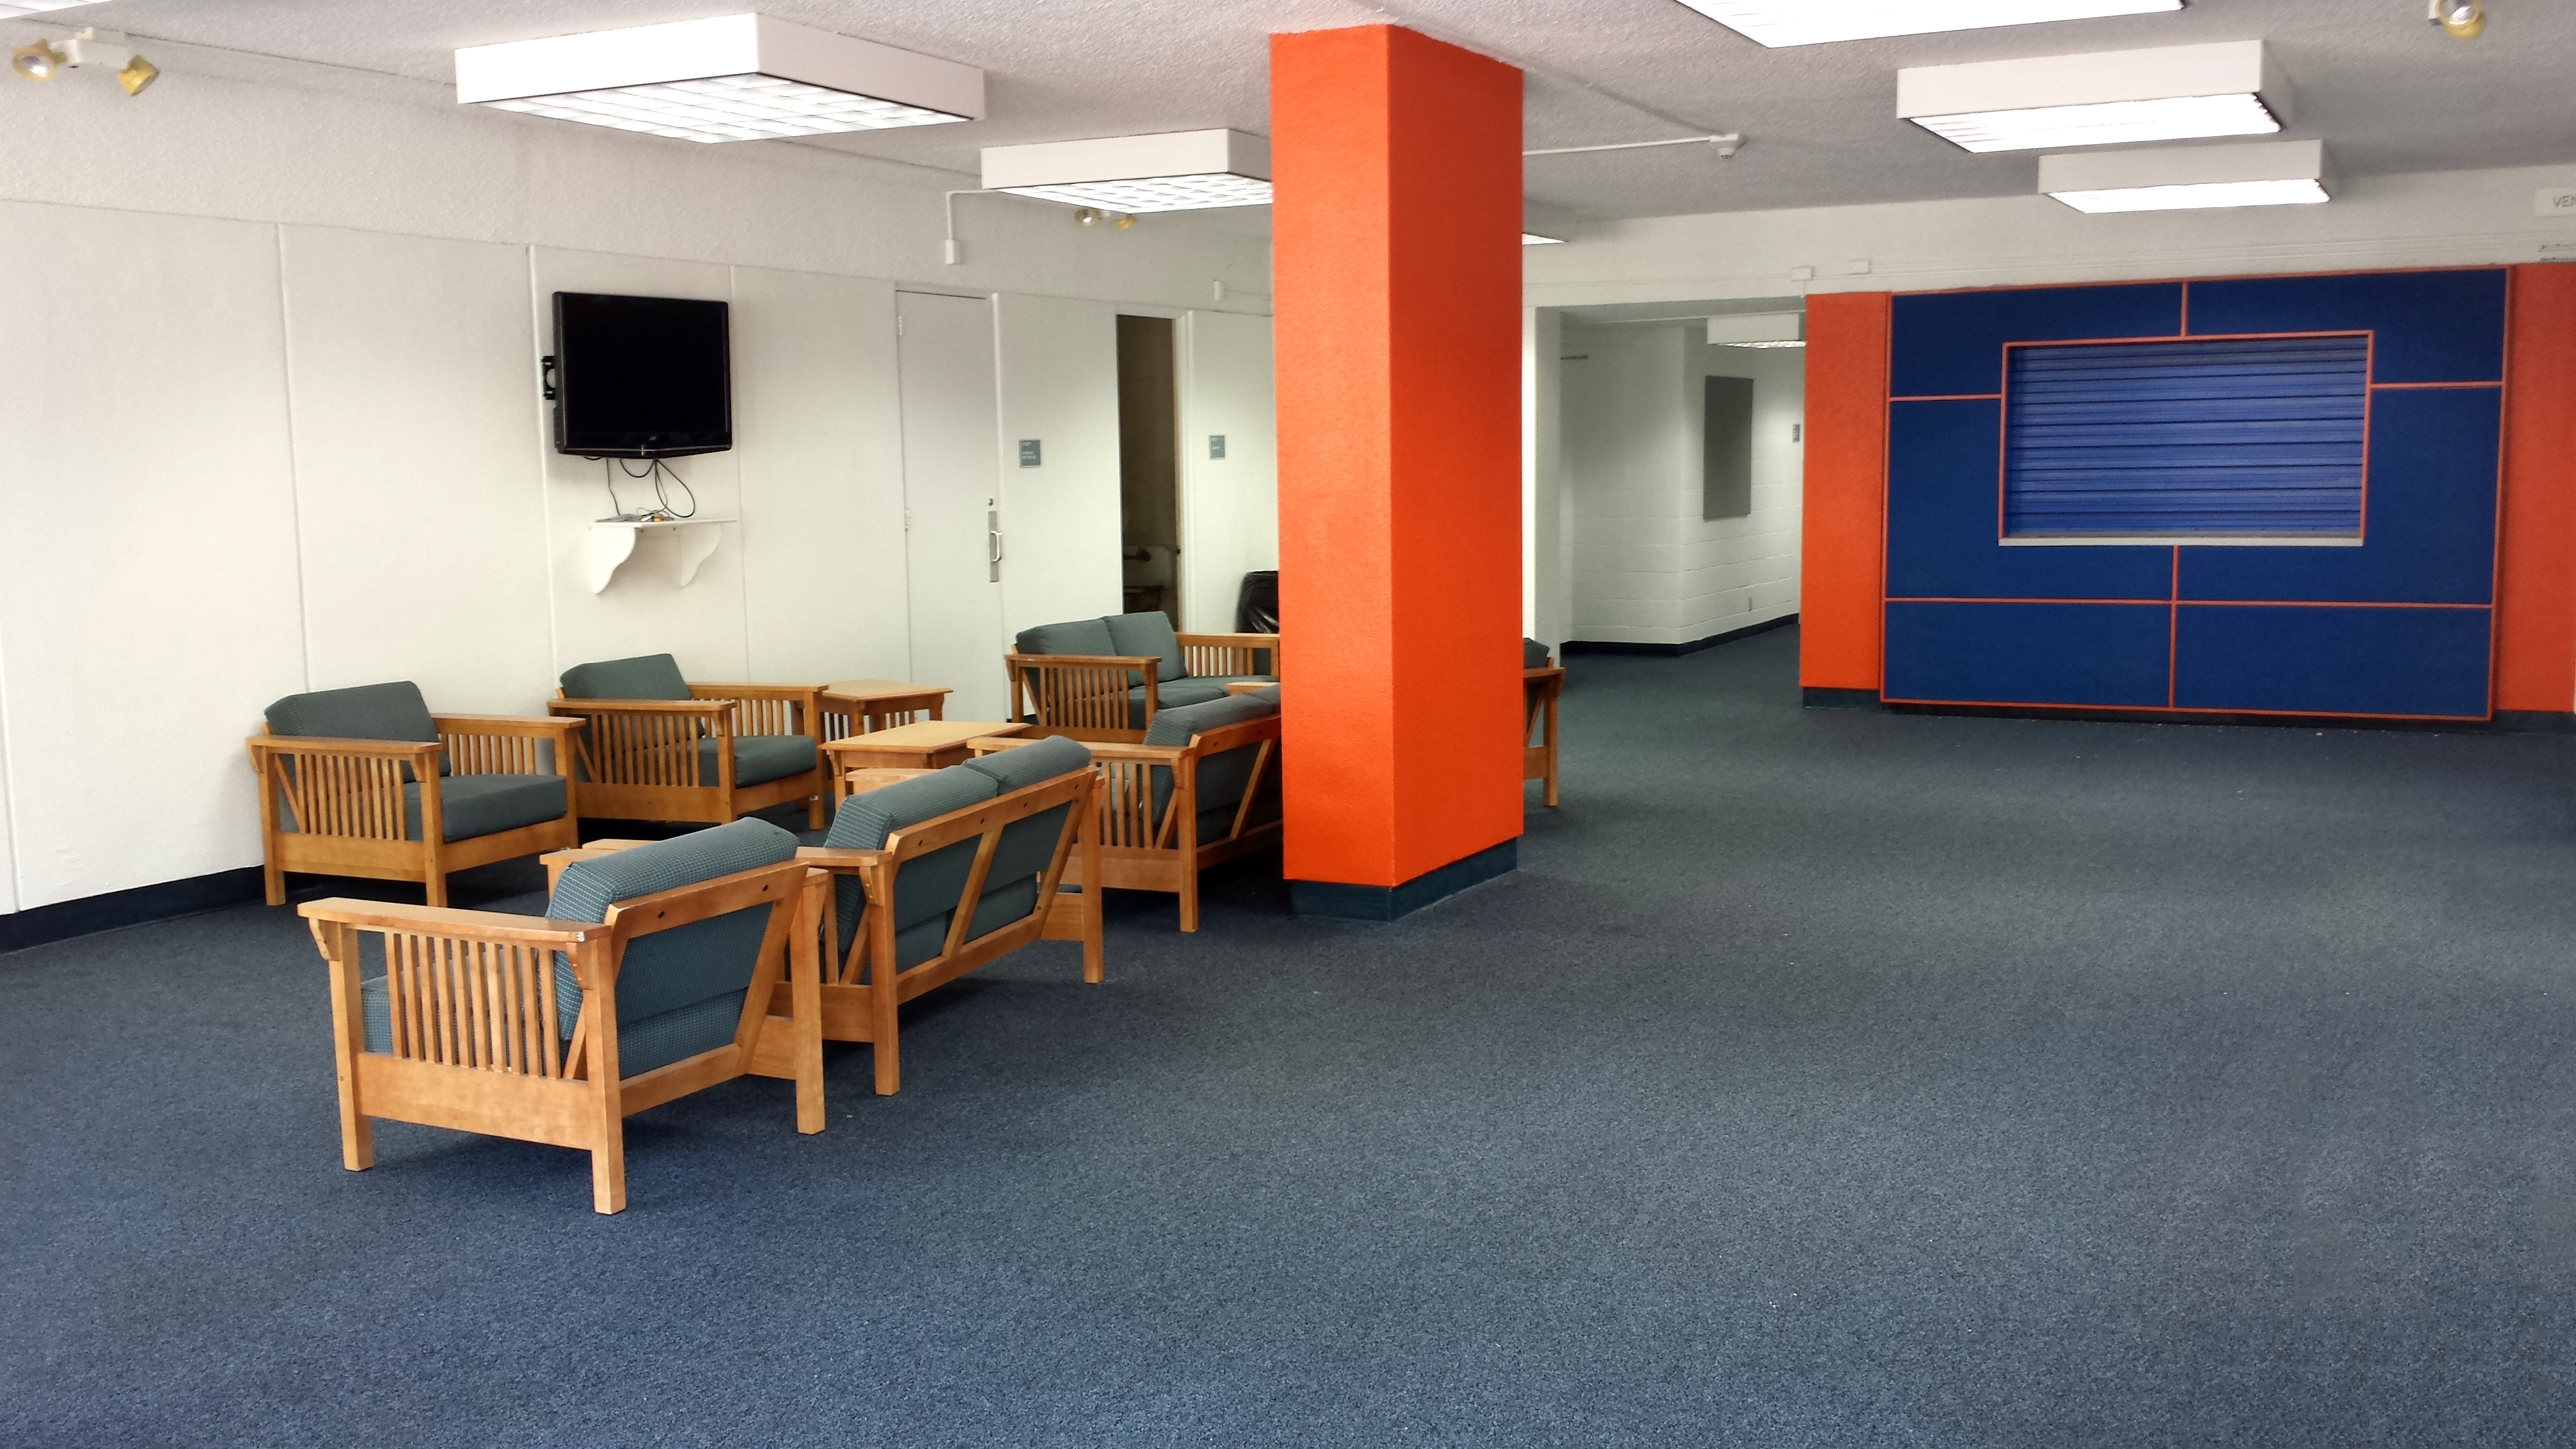 This is an image of the lounge in White Hall